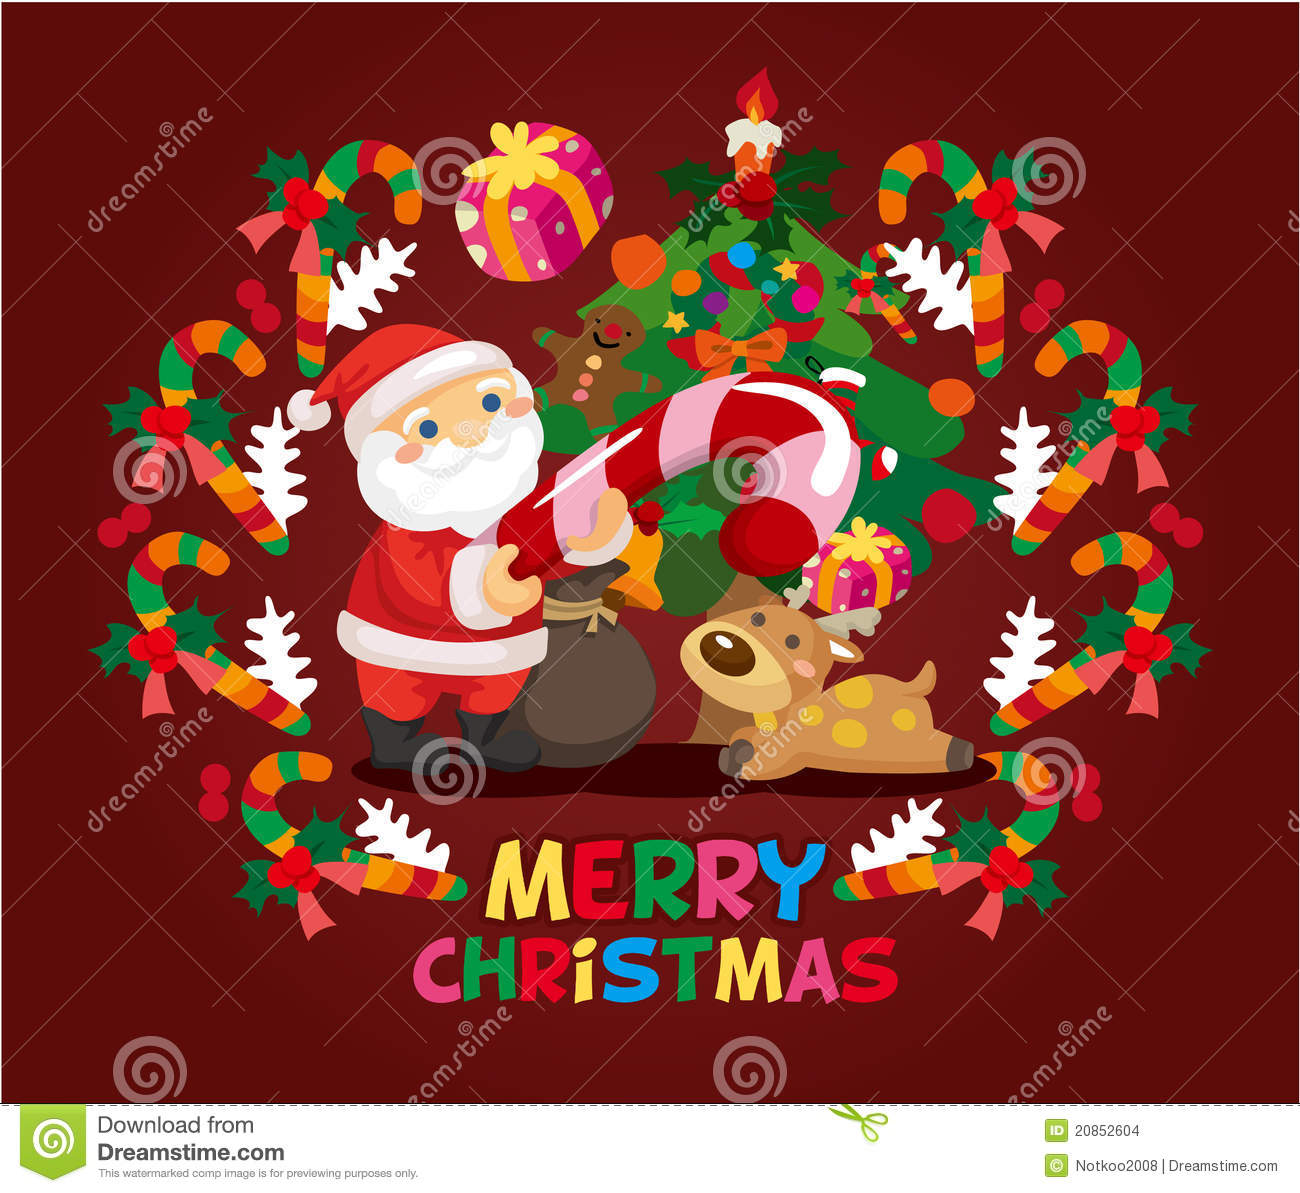 Cartoon xmas card stock vector. Illustration of cartoon - 20852604